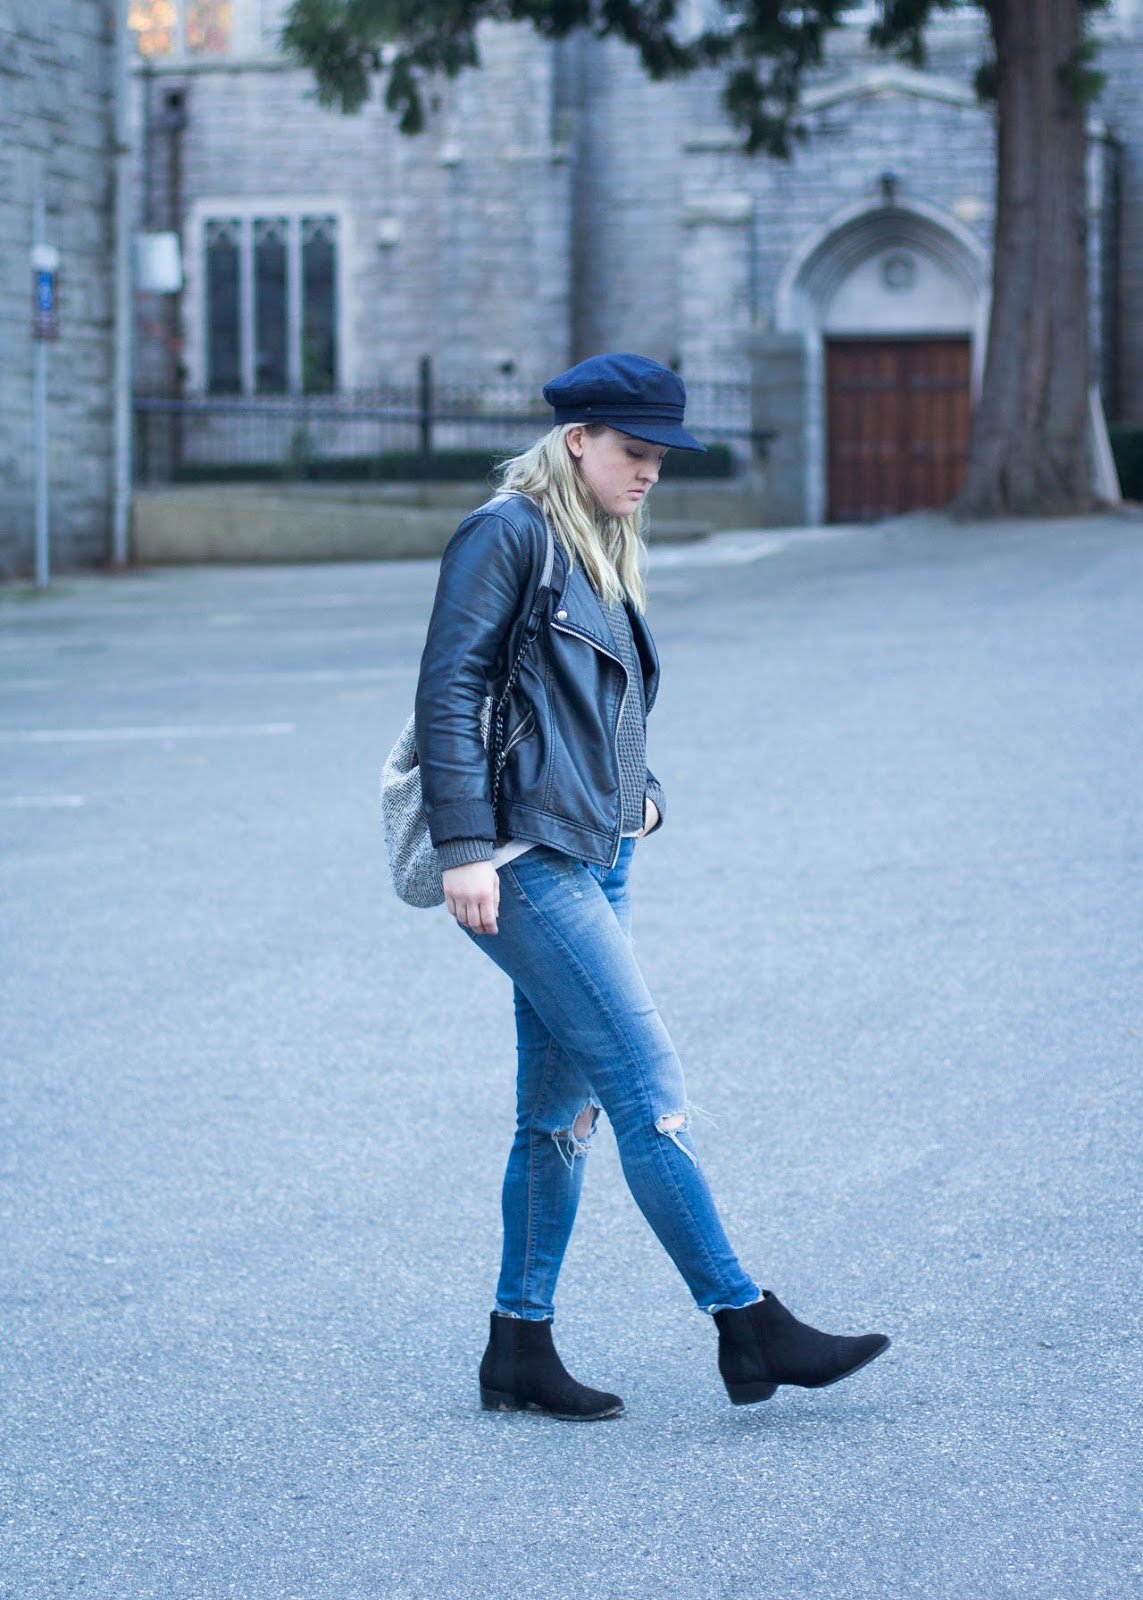 mixing materials - contrasting outfit - Fall style - Vancouver Fashion Blog